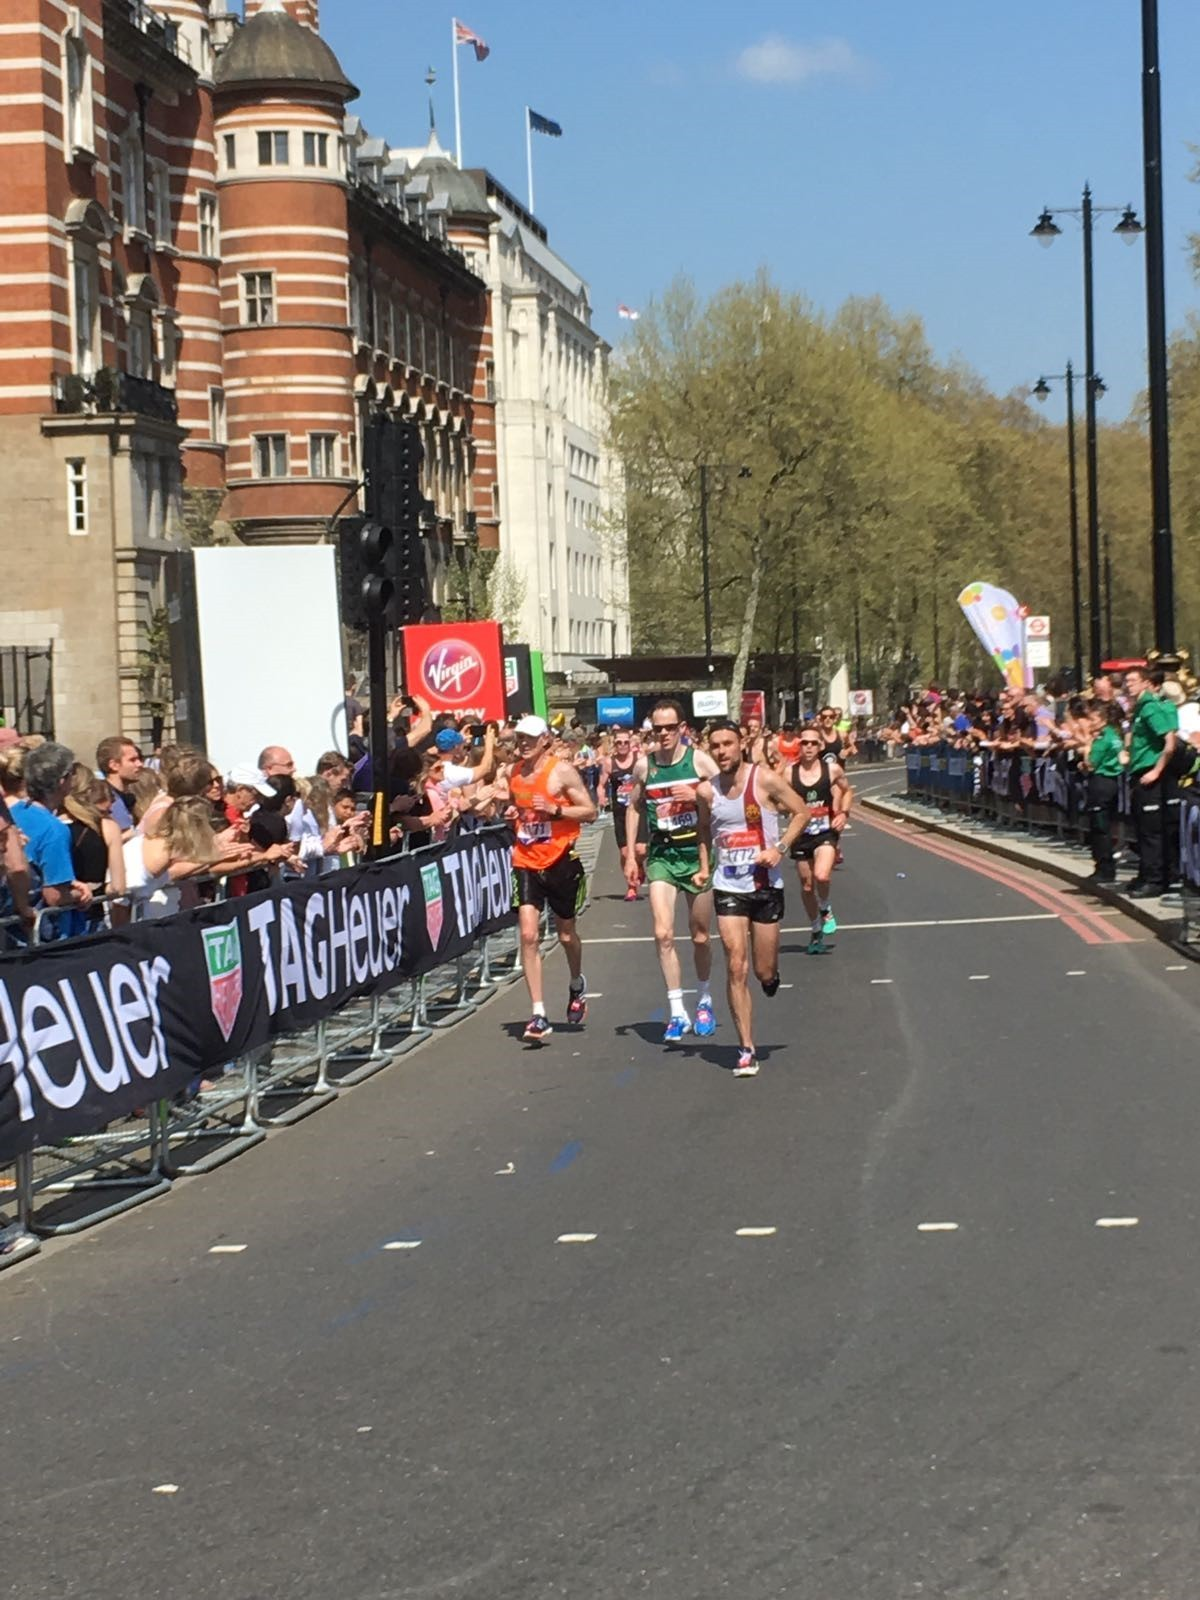 Joe Croft( right) during the London Marathon